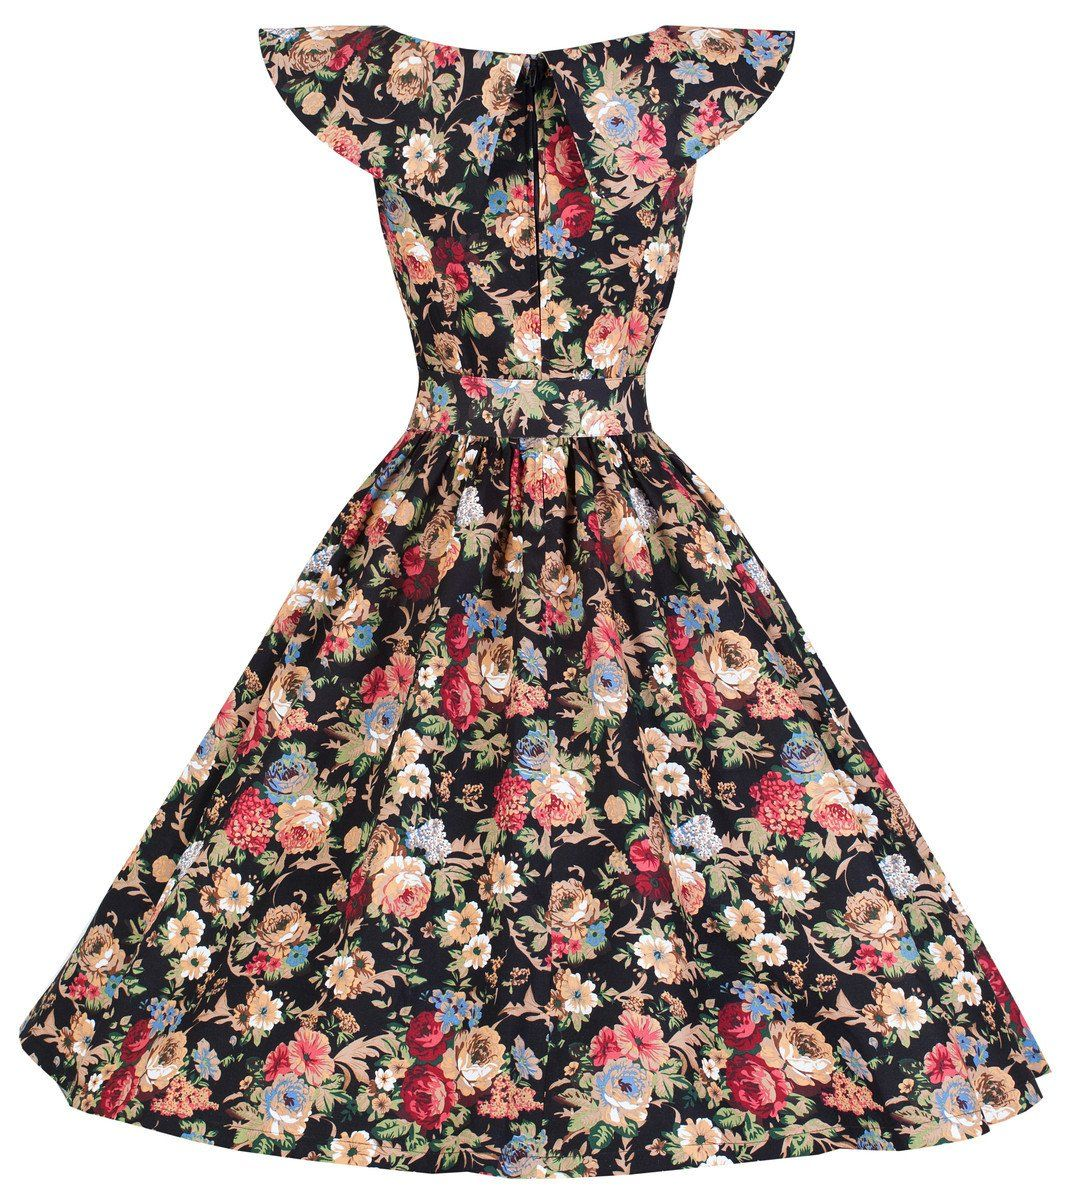 Lindy Bop Hetty Vintage 1950 S Spring Garden Floral Party Dress At Amazon Women S Clothing Sto Vintage Inspired Dresses Floral Swing Dress Floral Dress Black [ 1200 x 1069 Pixel ]